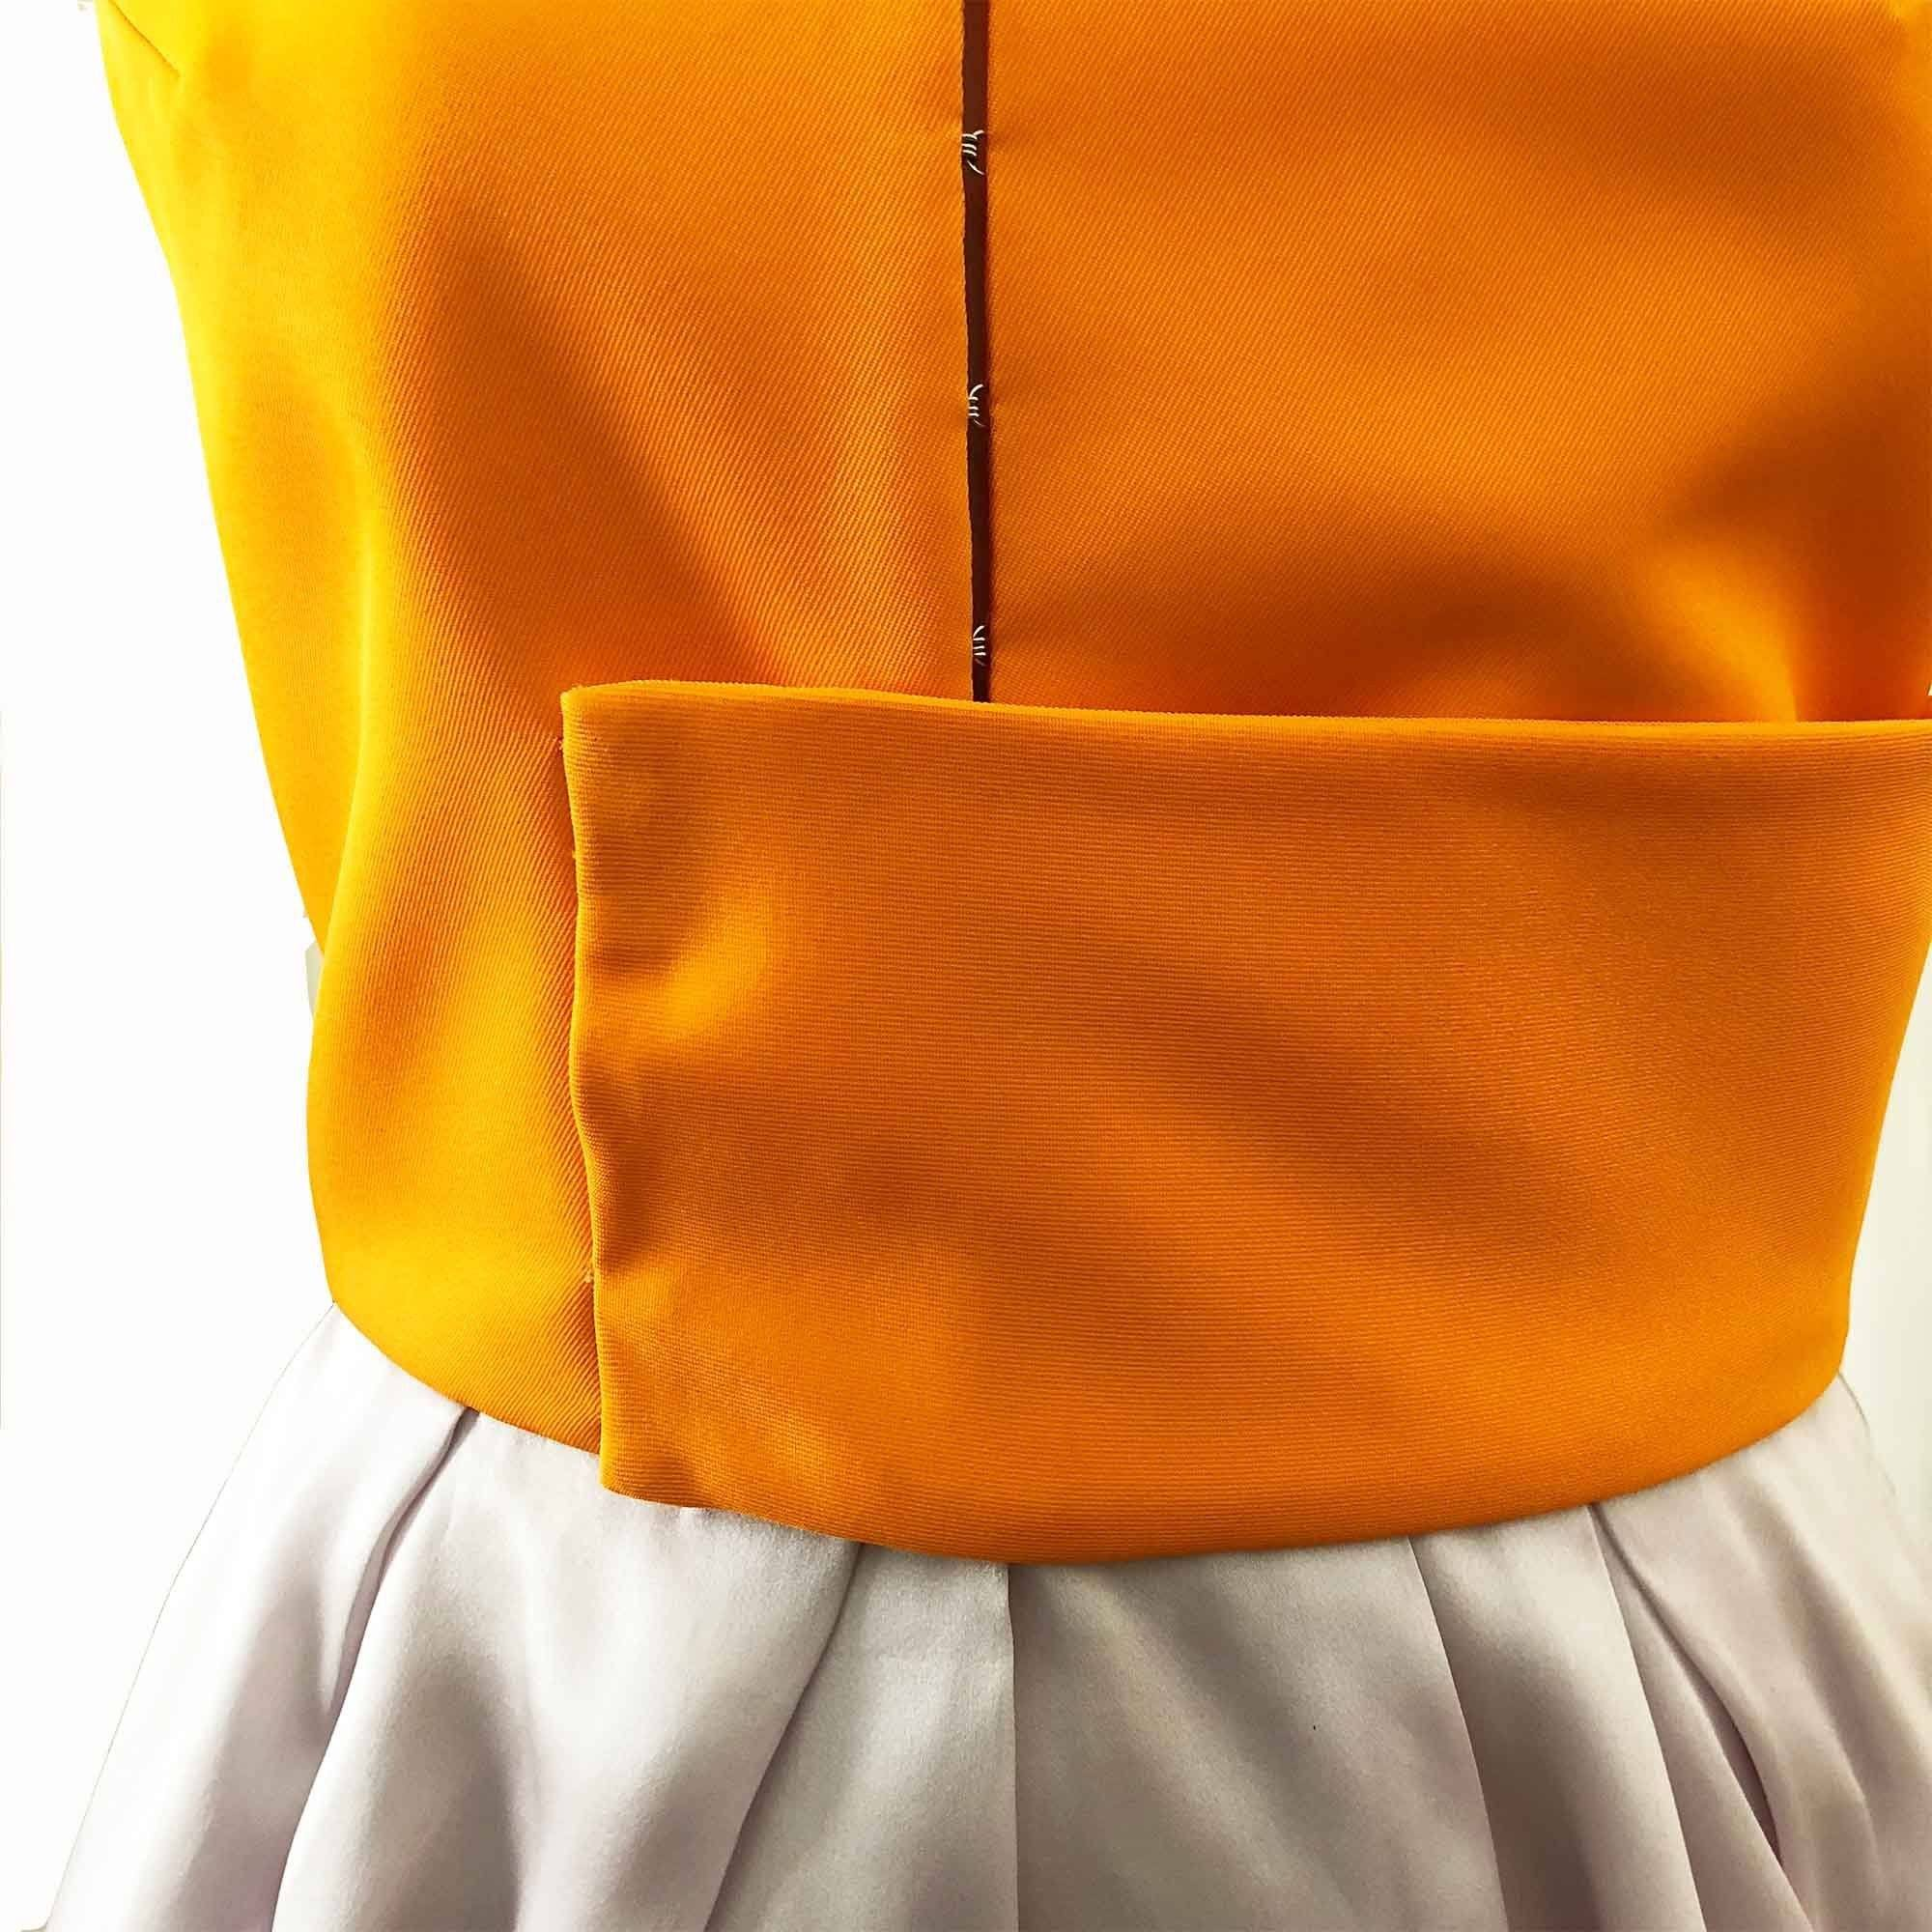 Christian Dior Color Block Dress 2014